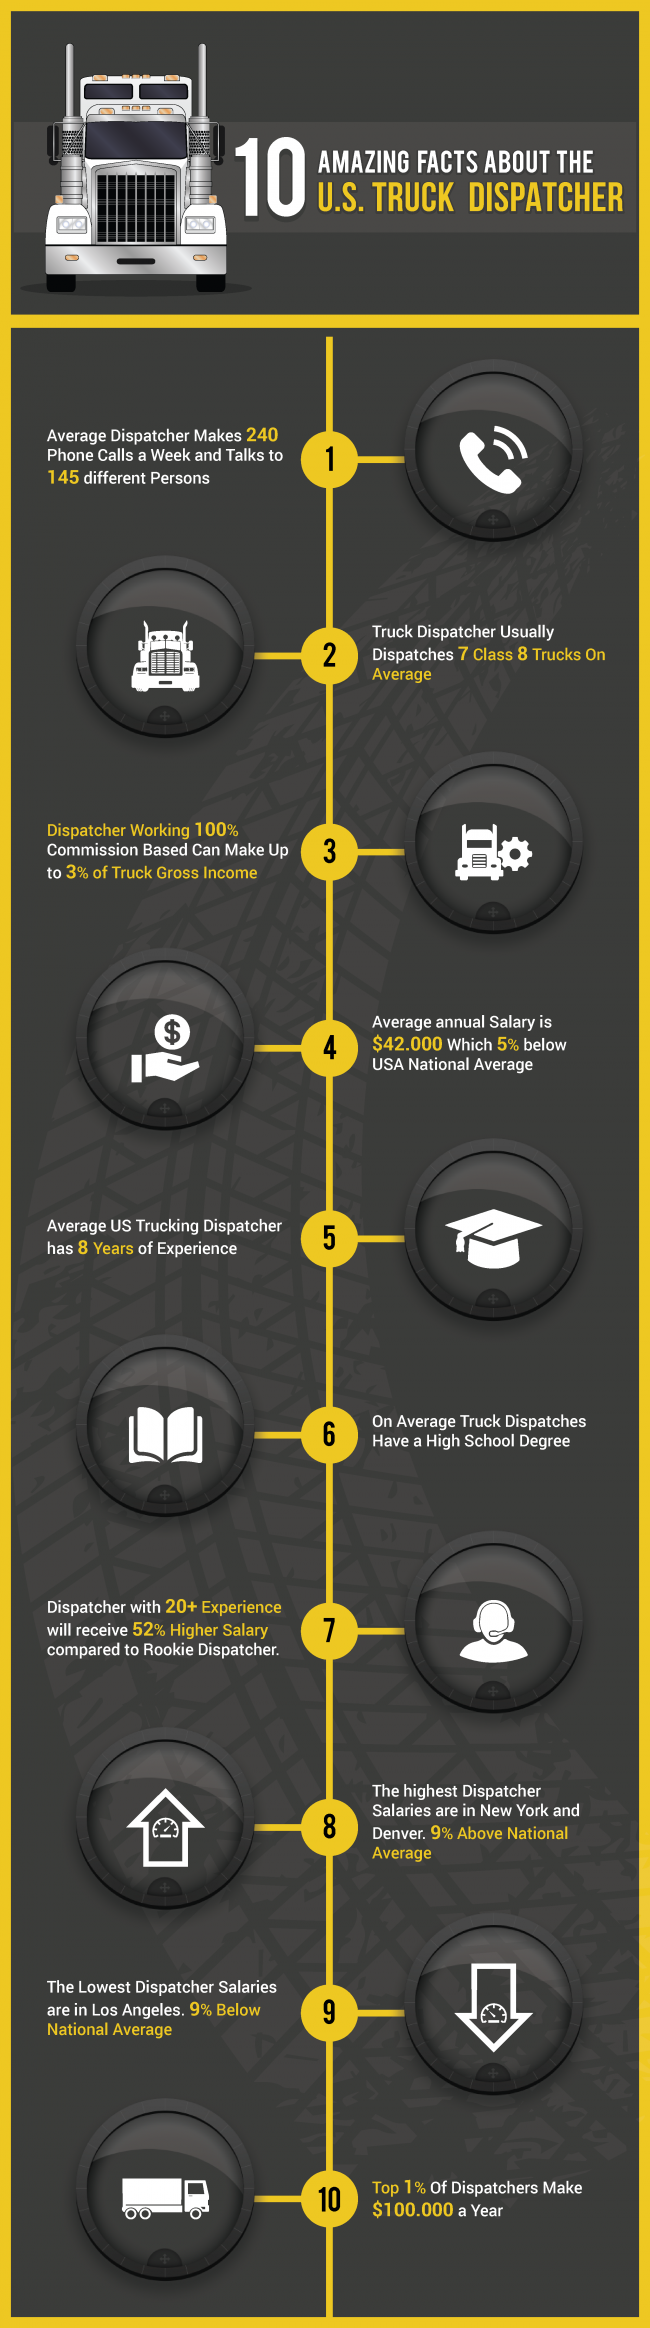 INFOGRAPHIC: 10 Amazing Facts About the U.S. Truck Dispatcher